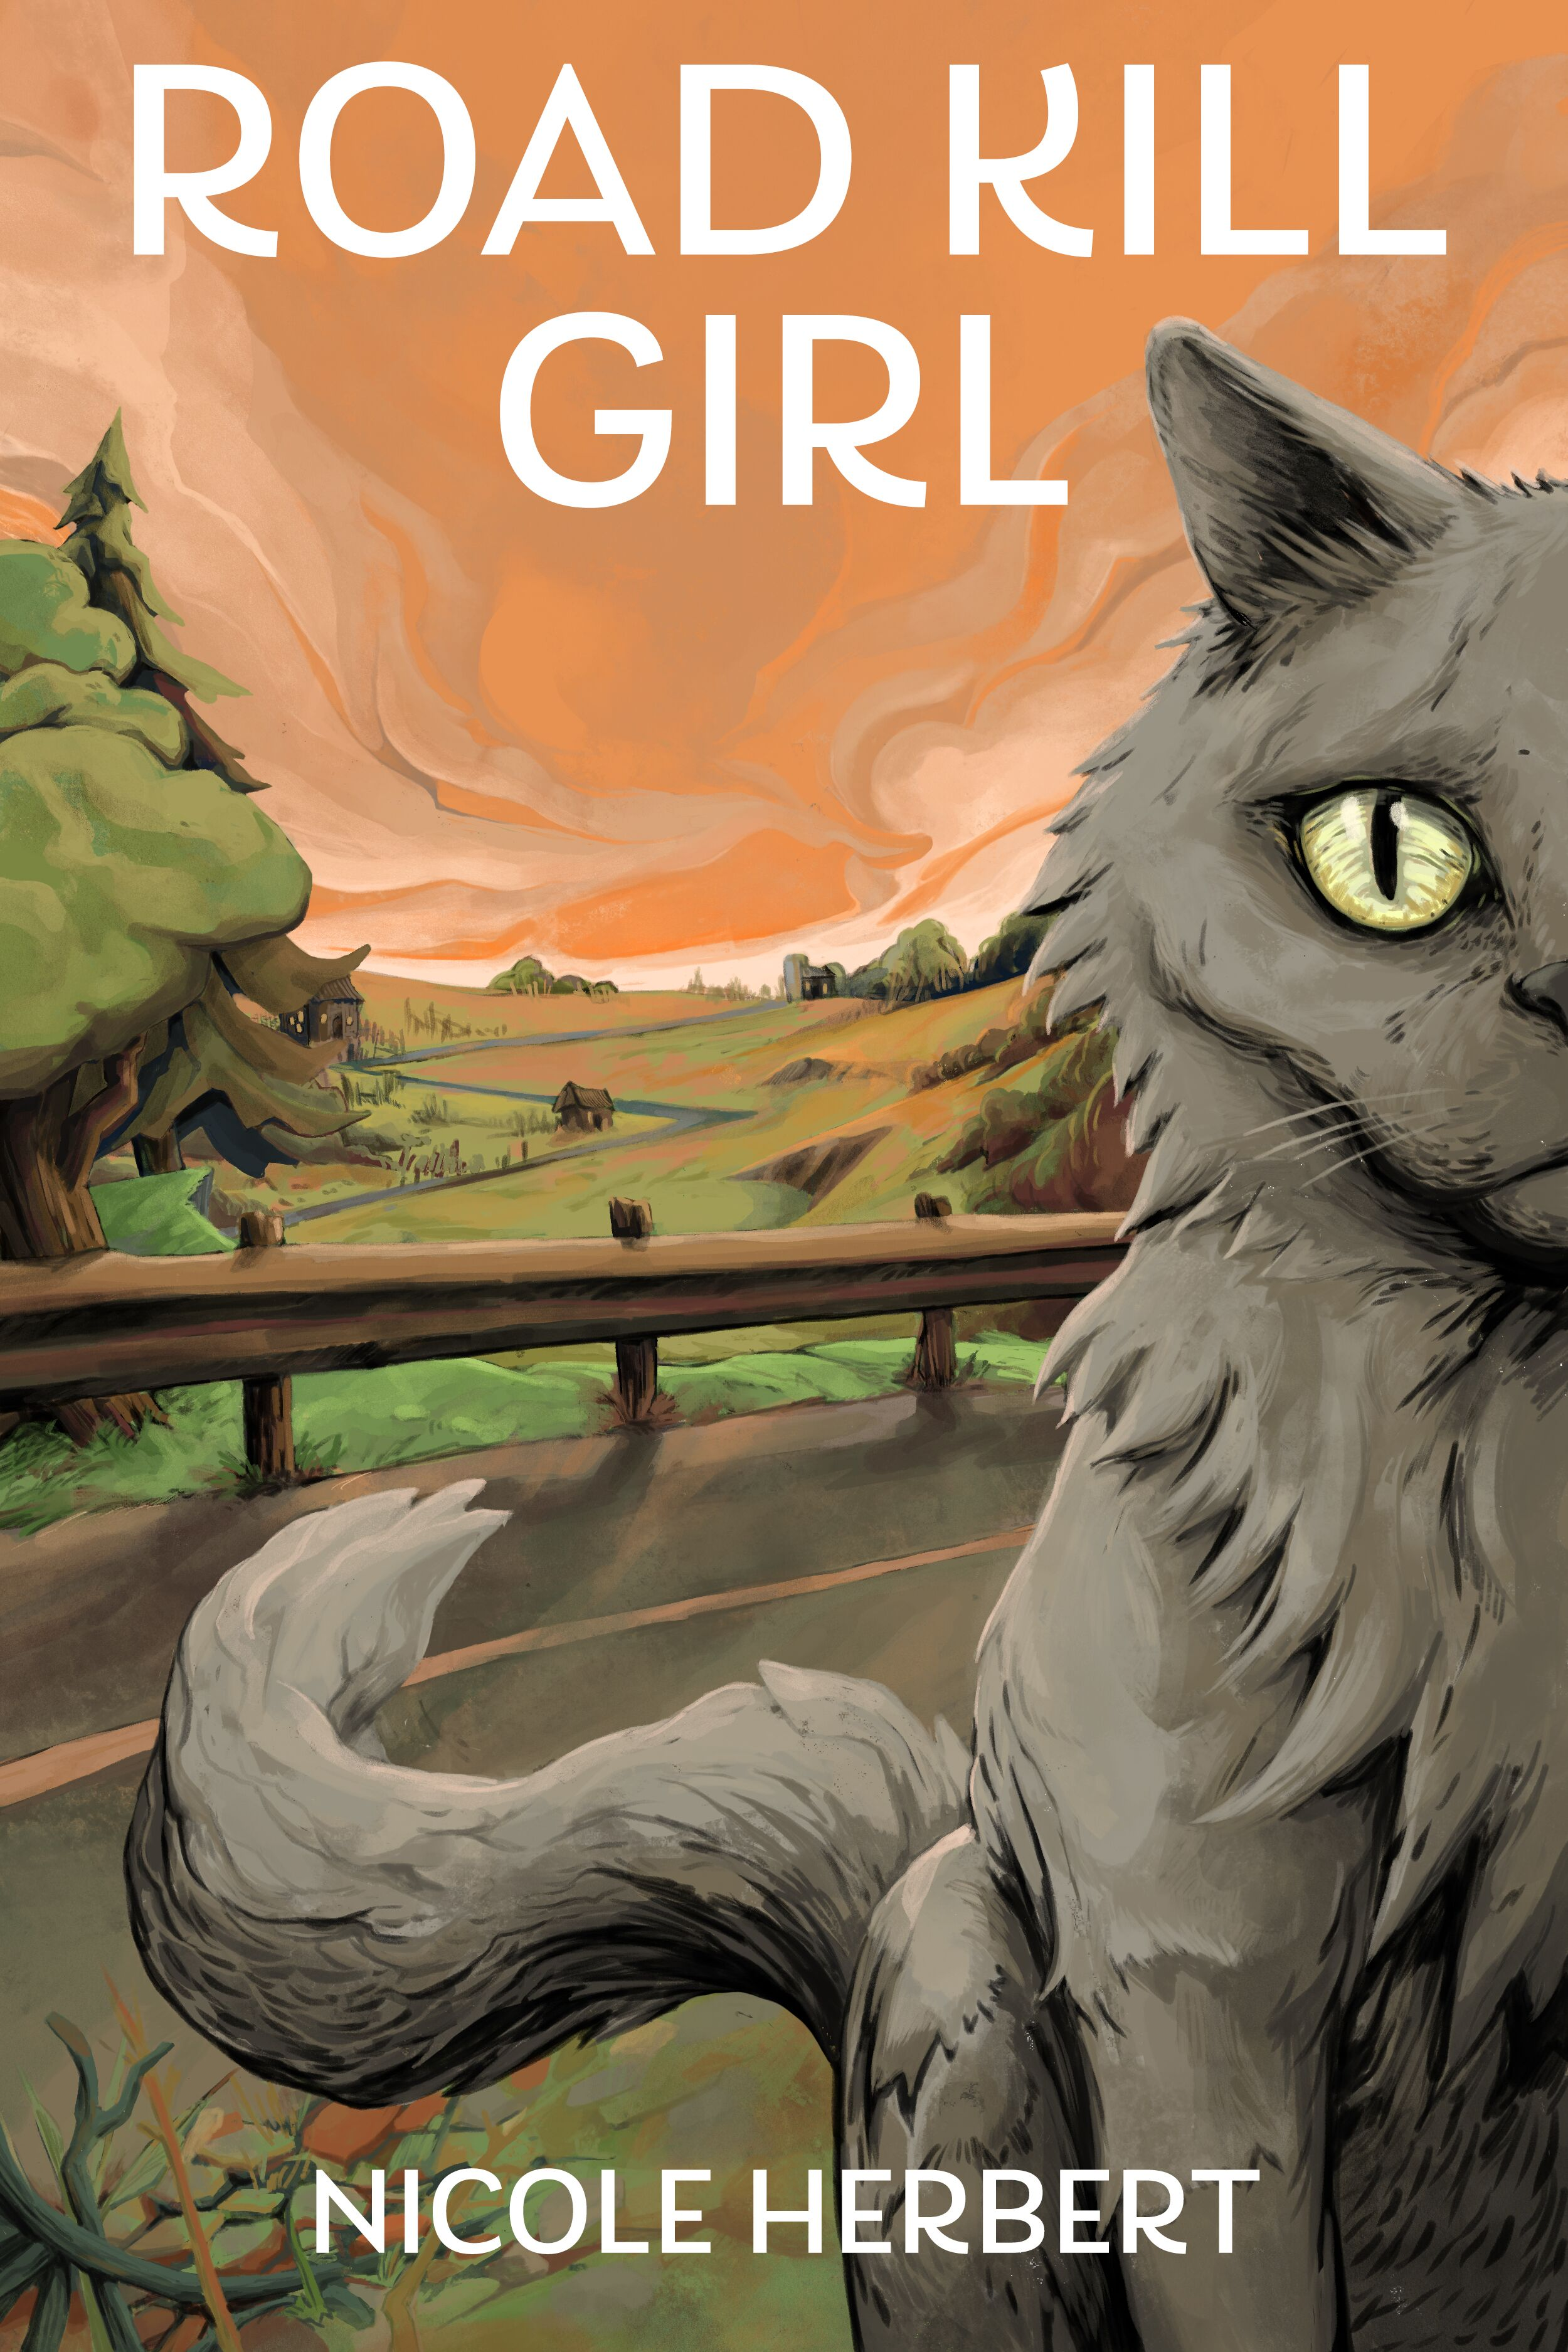 Road Kill Girl by Nicole Herbert, cover shows a gray cat on the side of a road with an orange sky and a farm in the distance